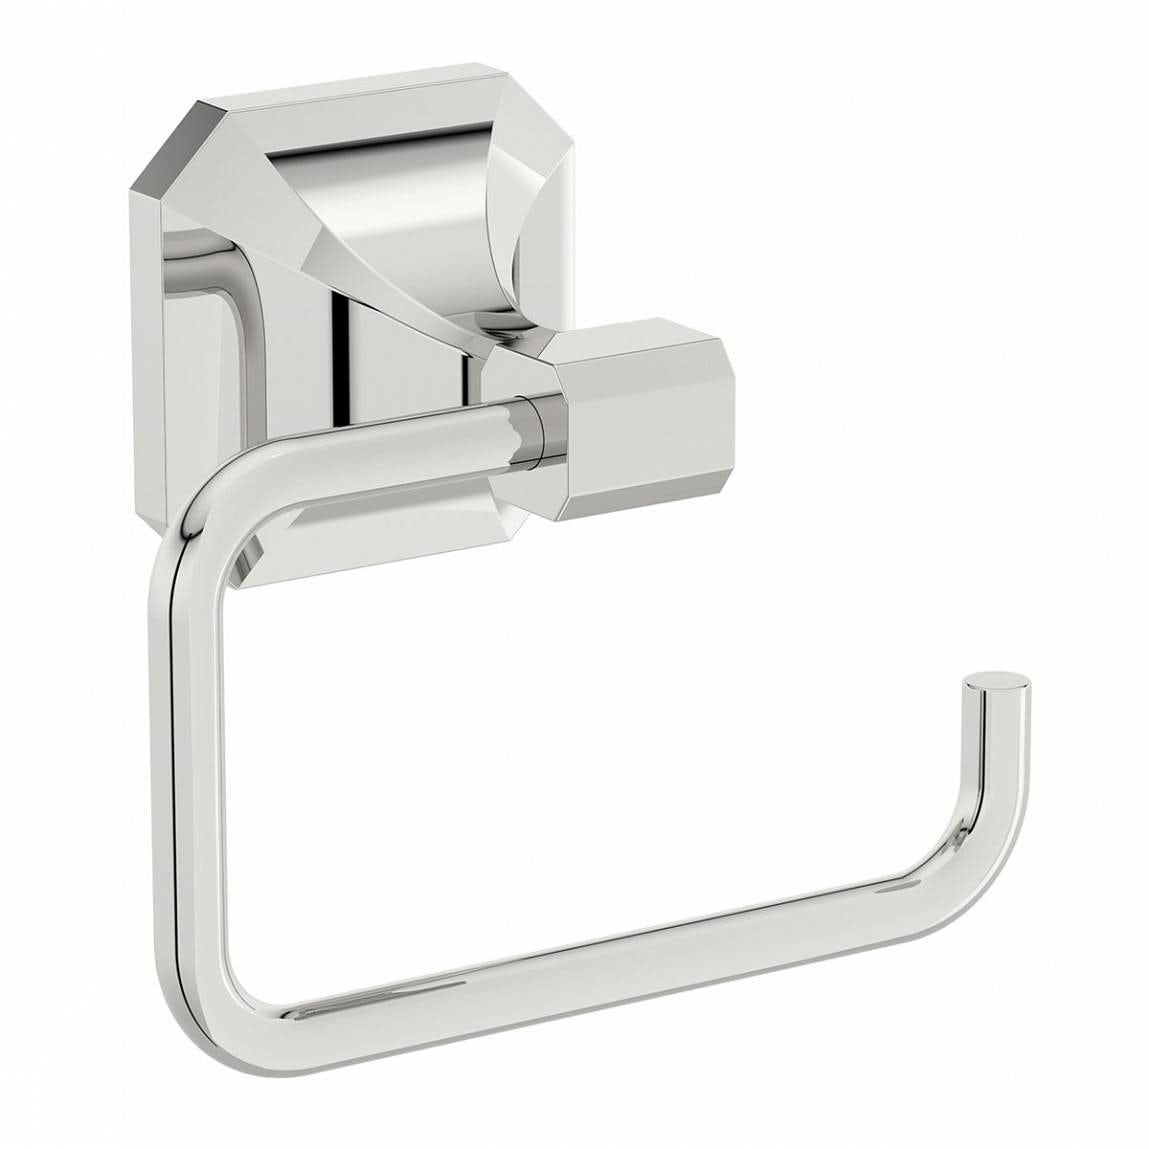 The Bath Co. Camberley toilet roll holder